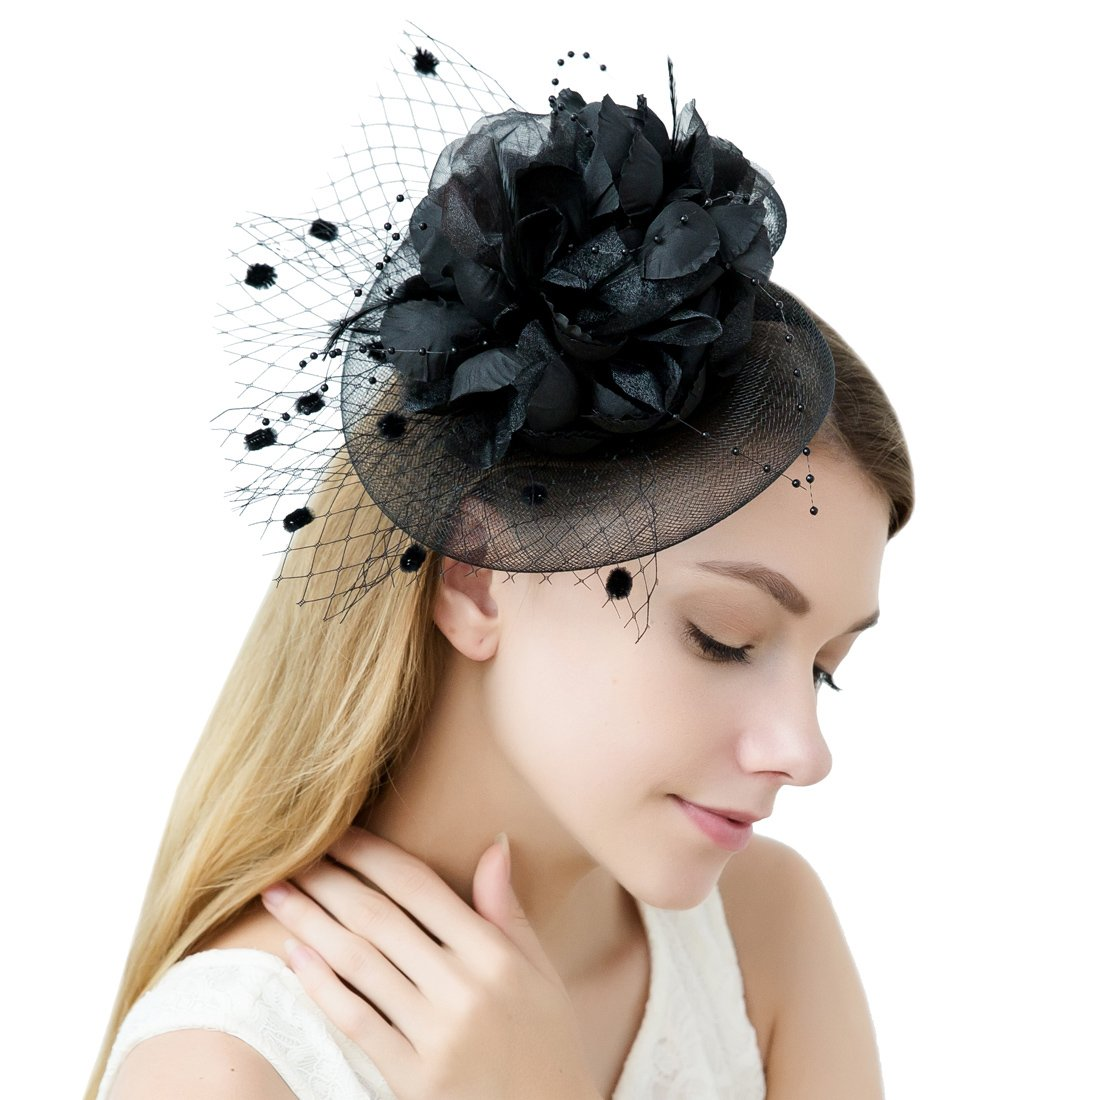 Flower Fascinator Hats Women With Veil Feather Headband Headwear Tea Party Derby